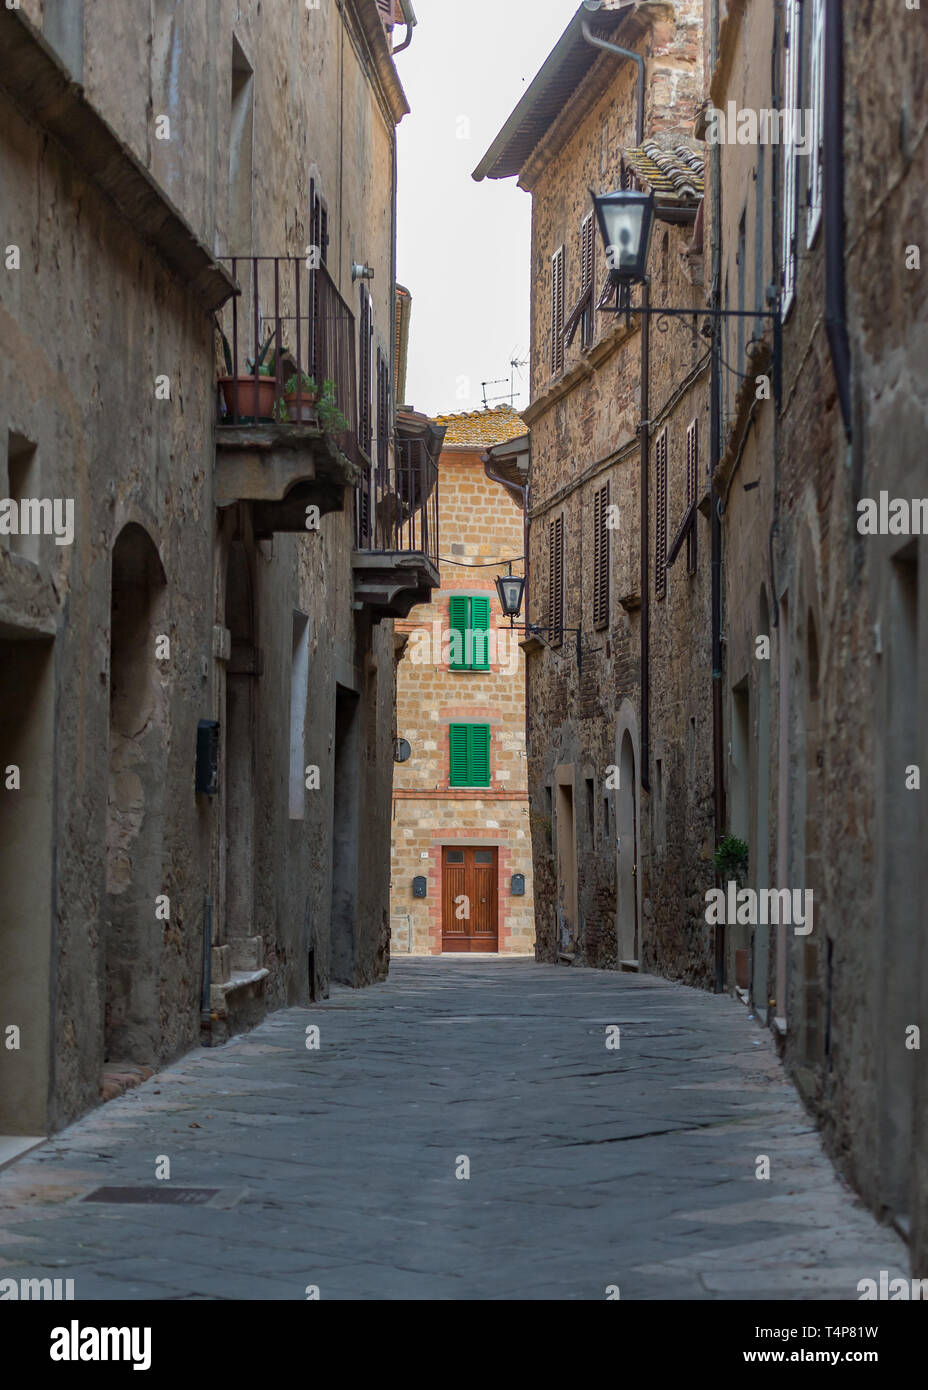 View of Tuscany, Italy - Stock Image